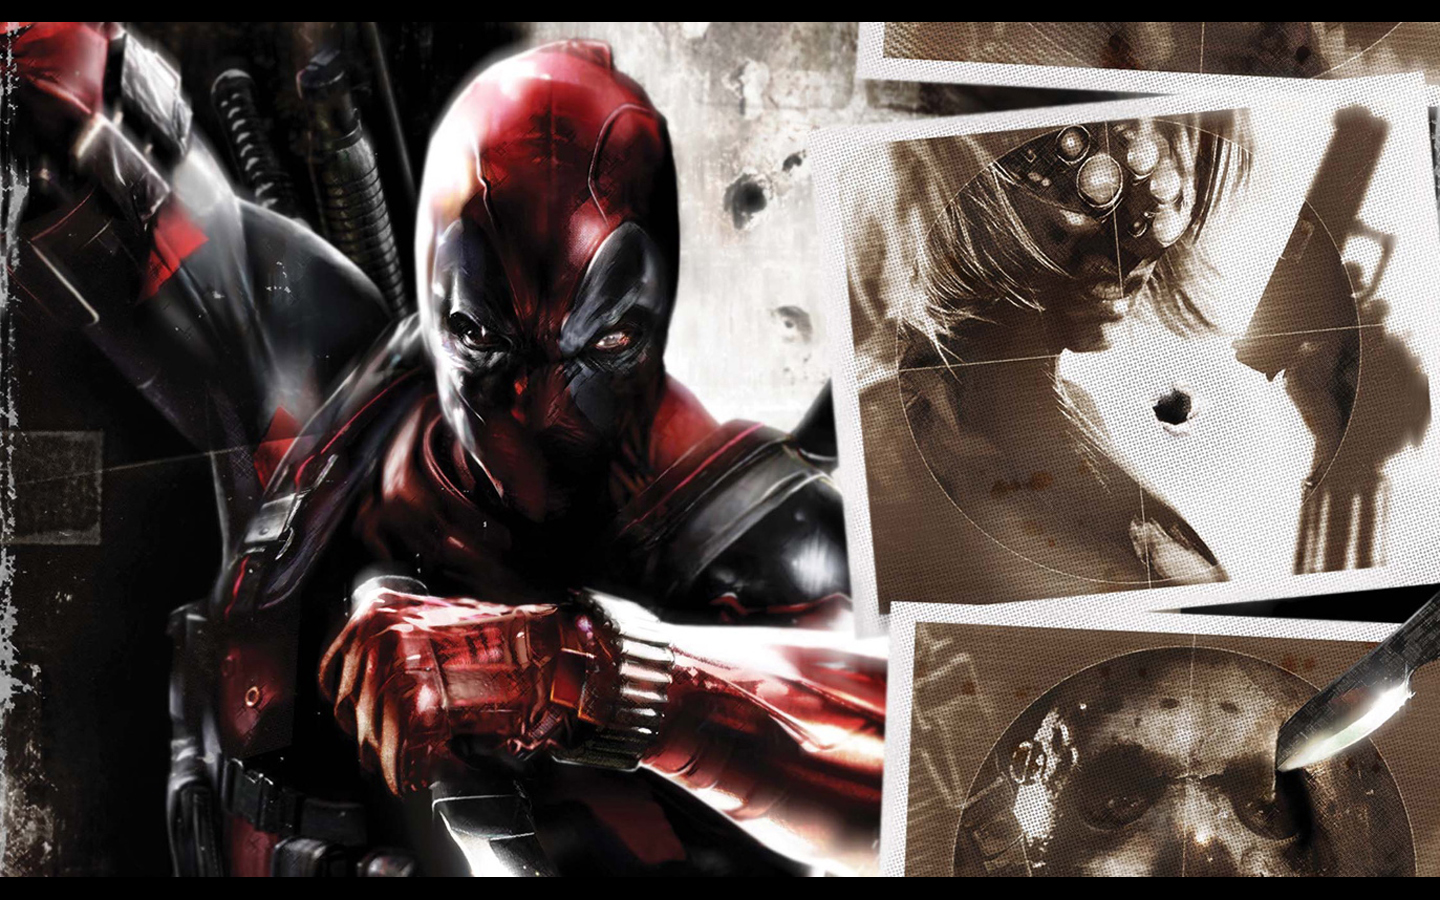 Badass Iphone Wallpaper Deadpool Wallpaper And Background Image 1440x900 Id